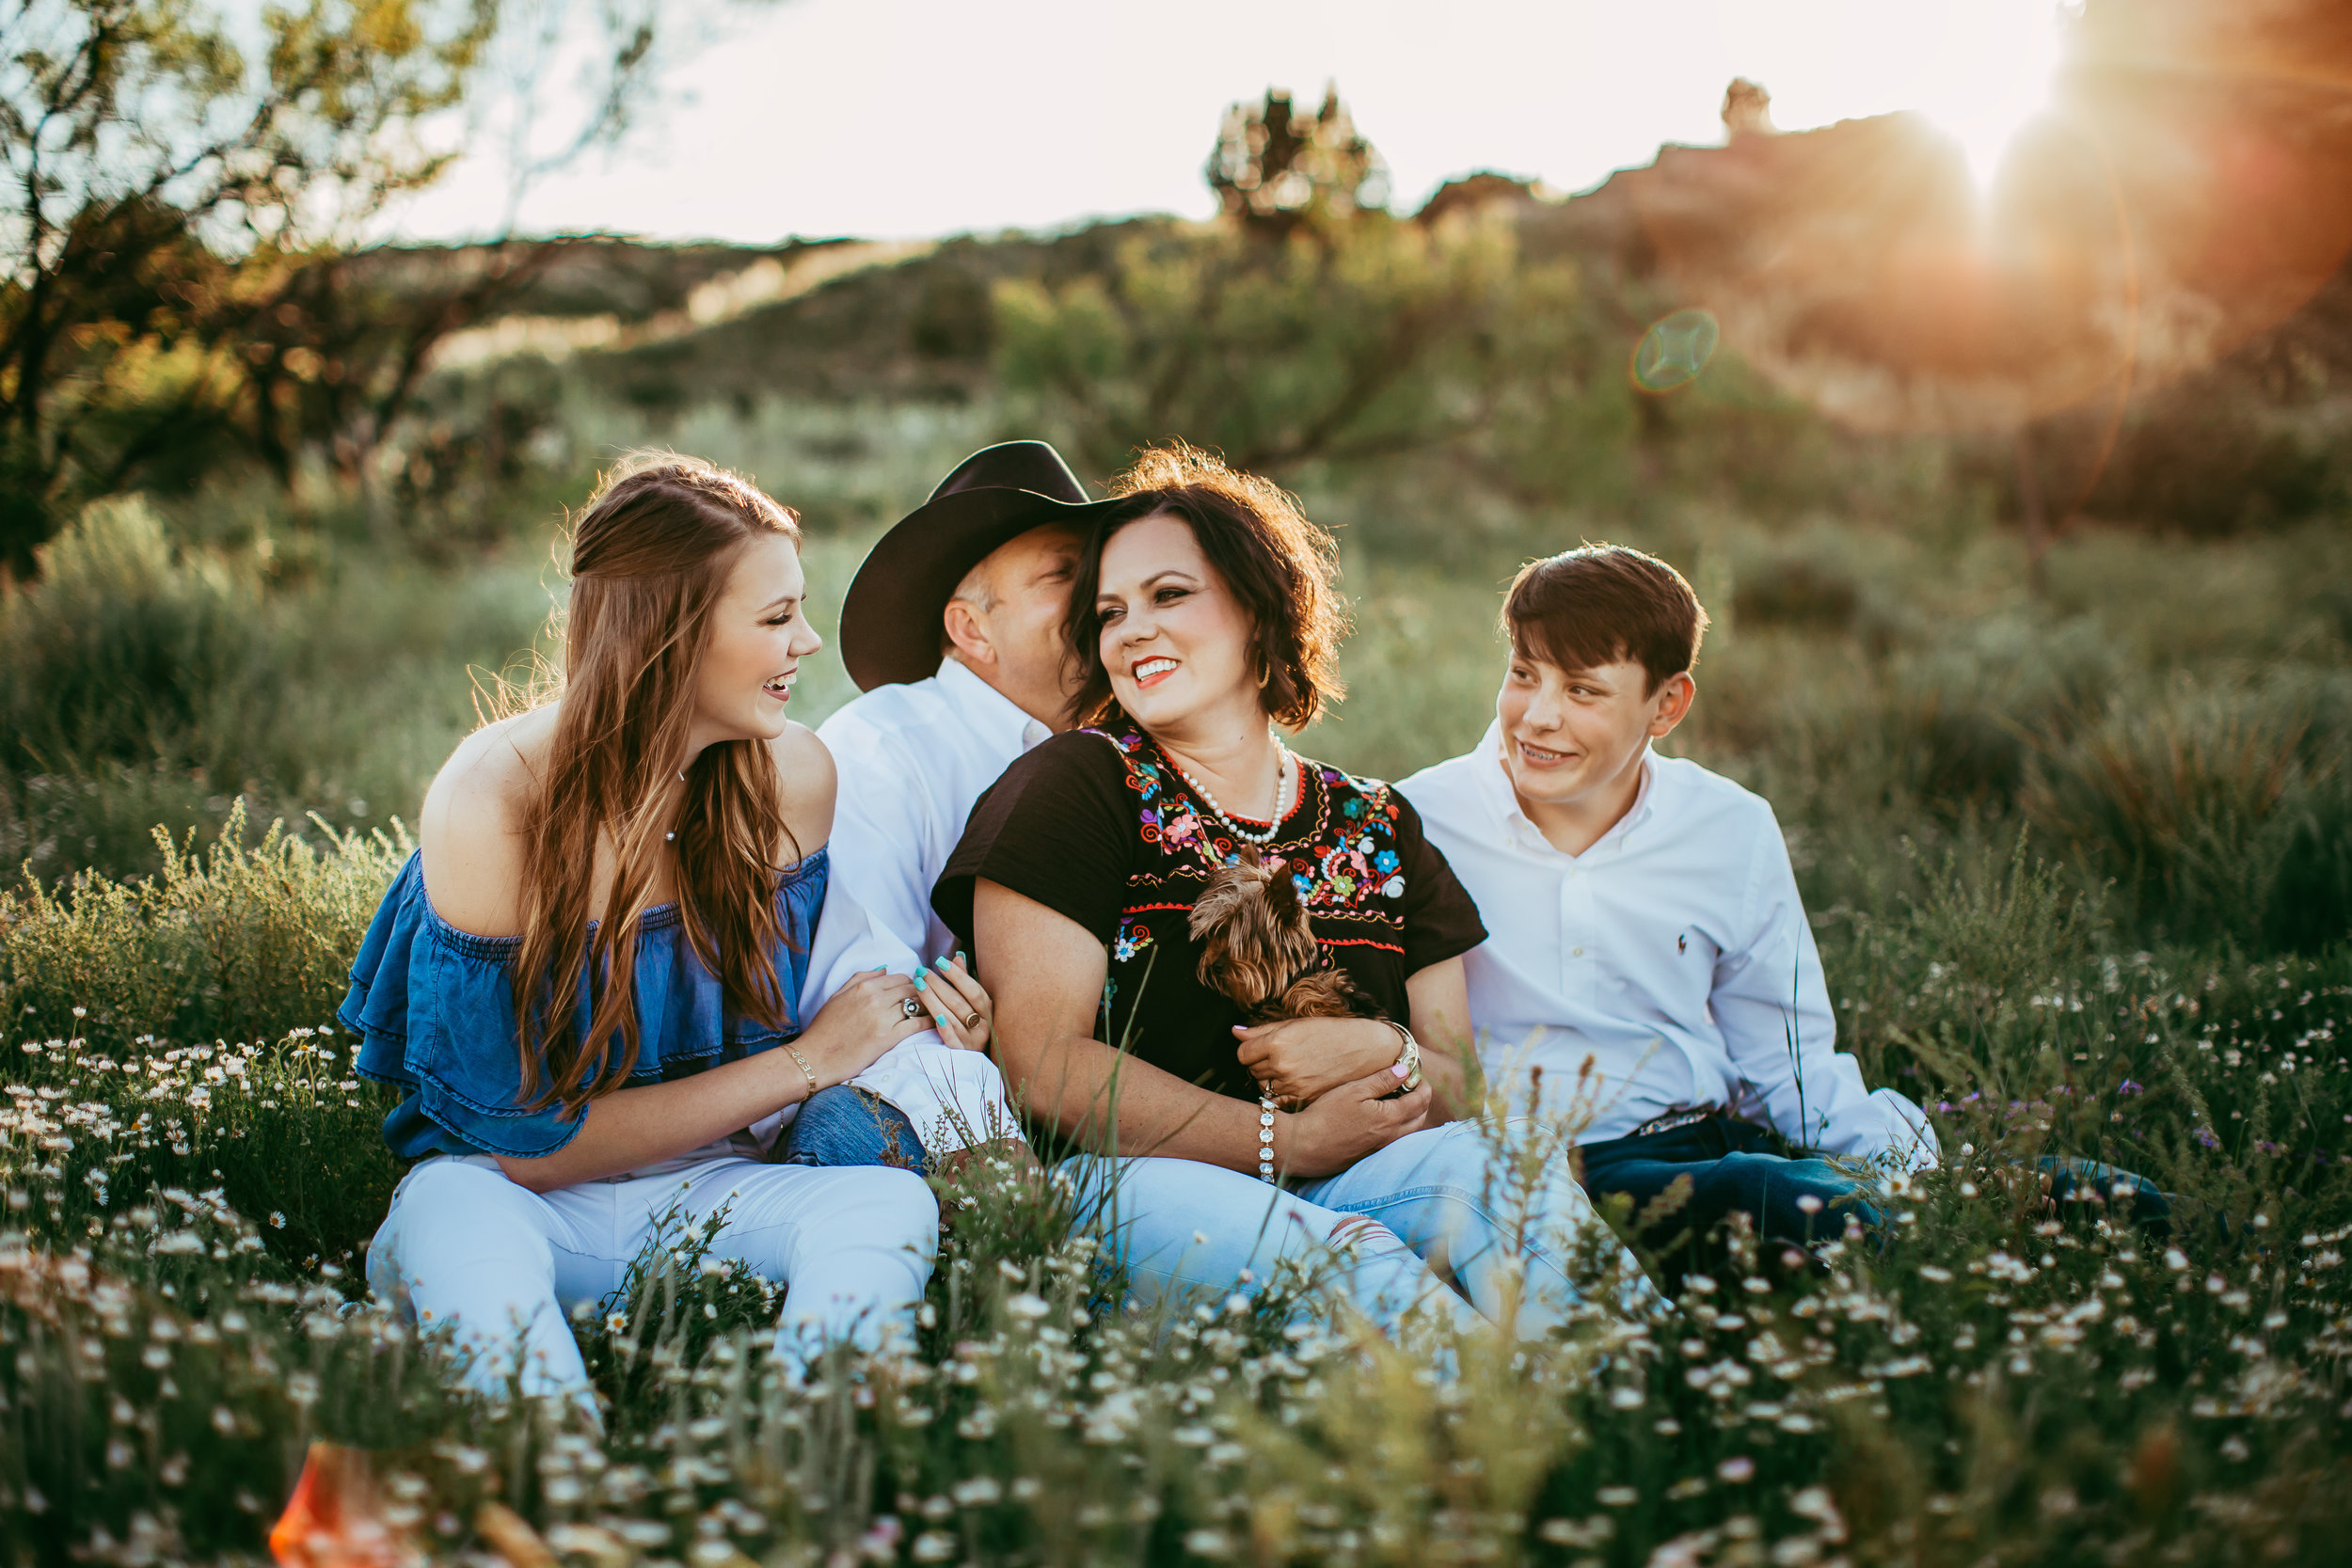 Laughing and talking with each other on their family ranch #tealawardphotography #texasfamilyphotographer #amarillophotographer #amarillofamilyphotographer #lifestylephotography #emotionalphotography #familyphotosoot #family #lovingsiblings #purejoy #familyphotos #familyphotographer #greatoutdoors